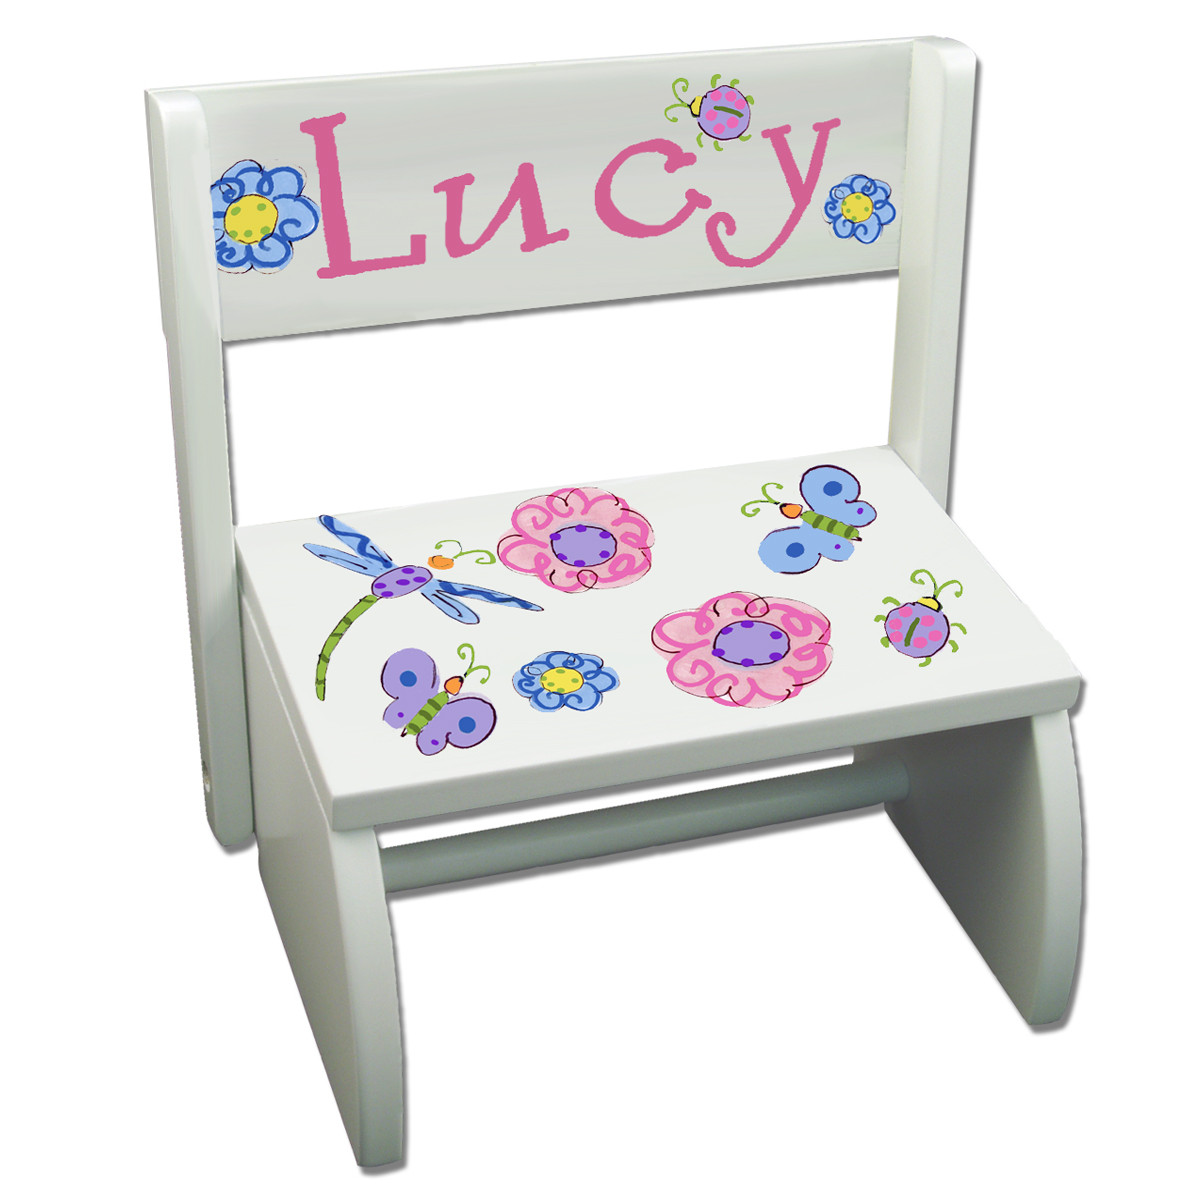 Personalized wooden step stool for toddlers hand painted with recipientu0027s name and design theme  sc 1 st  Hillaryu0027s gifts : wooden stool for kids - islam-shia.org